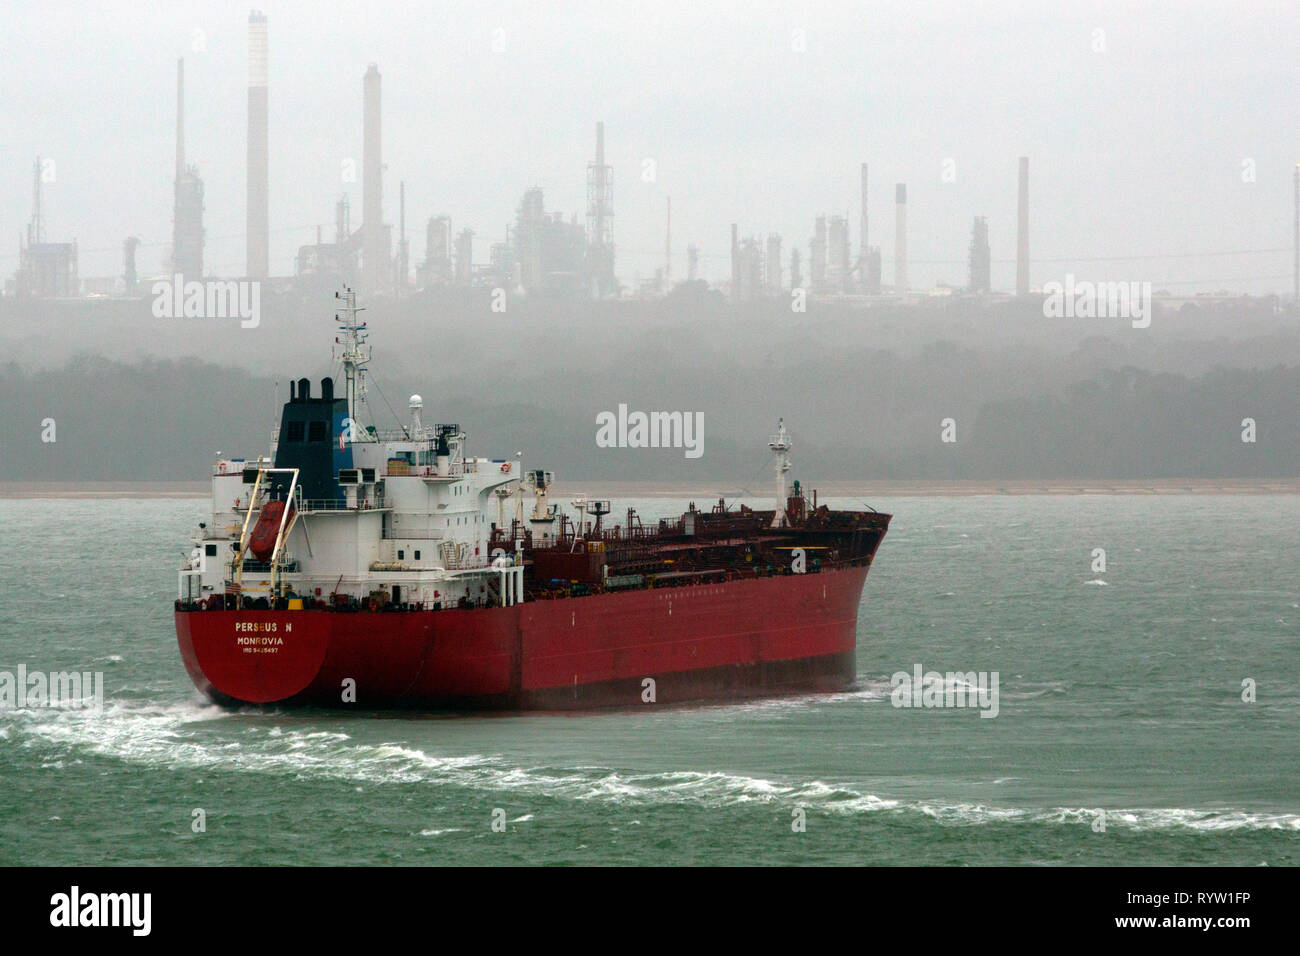 Oil,Chemical,Tanker,Perseus N, Registered, Monrovia, The Solent, Fawley,Oil,Refinery, Southampton, Cowes, Isle of Wight, Hampshire, England, UK, Stock Photo